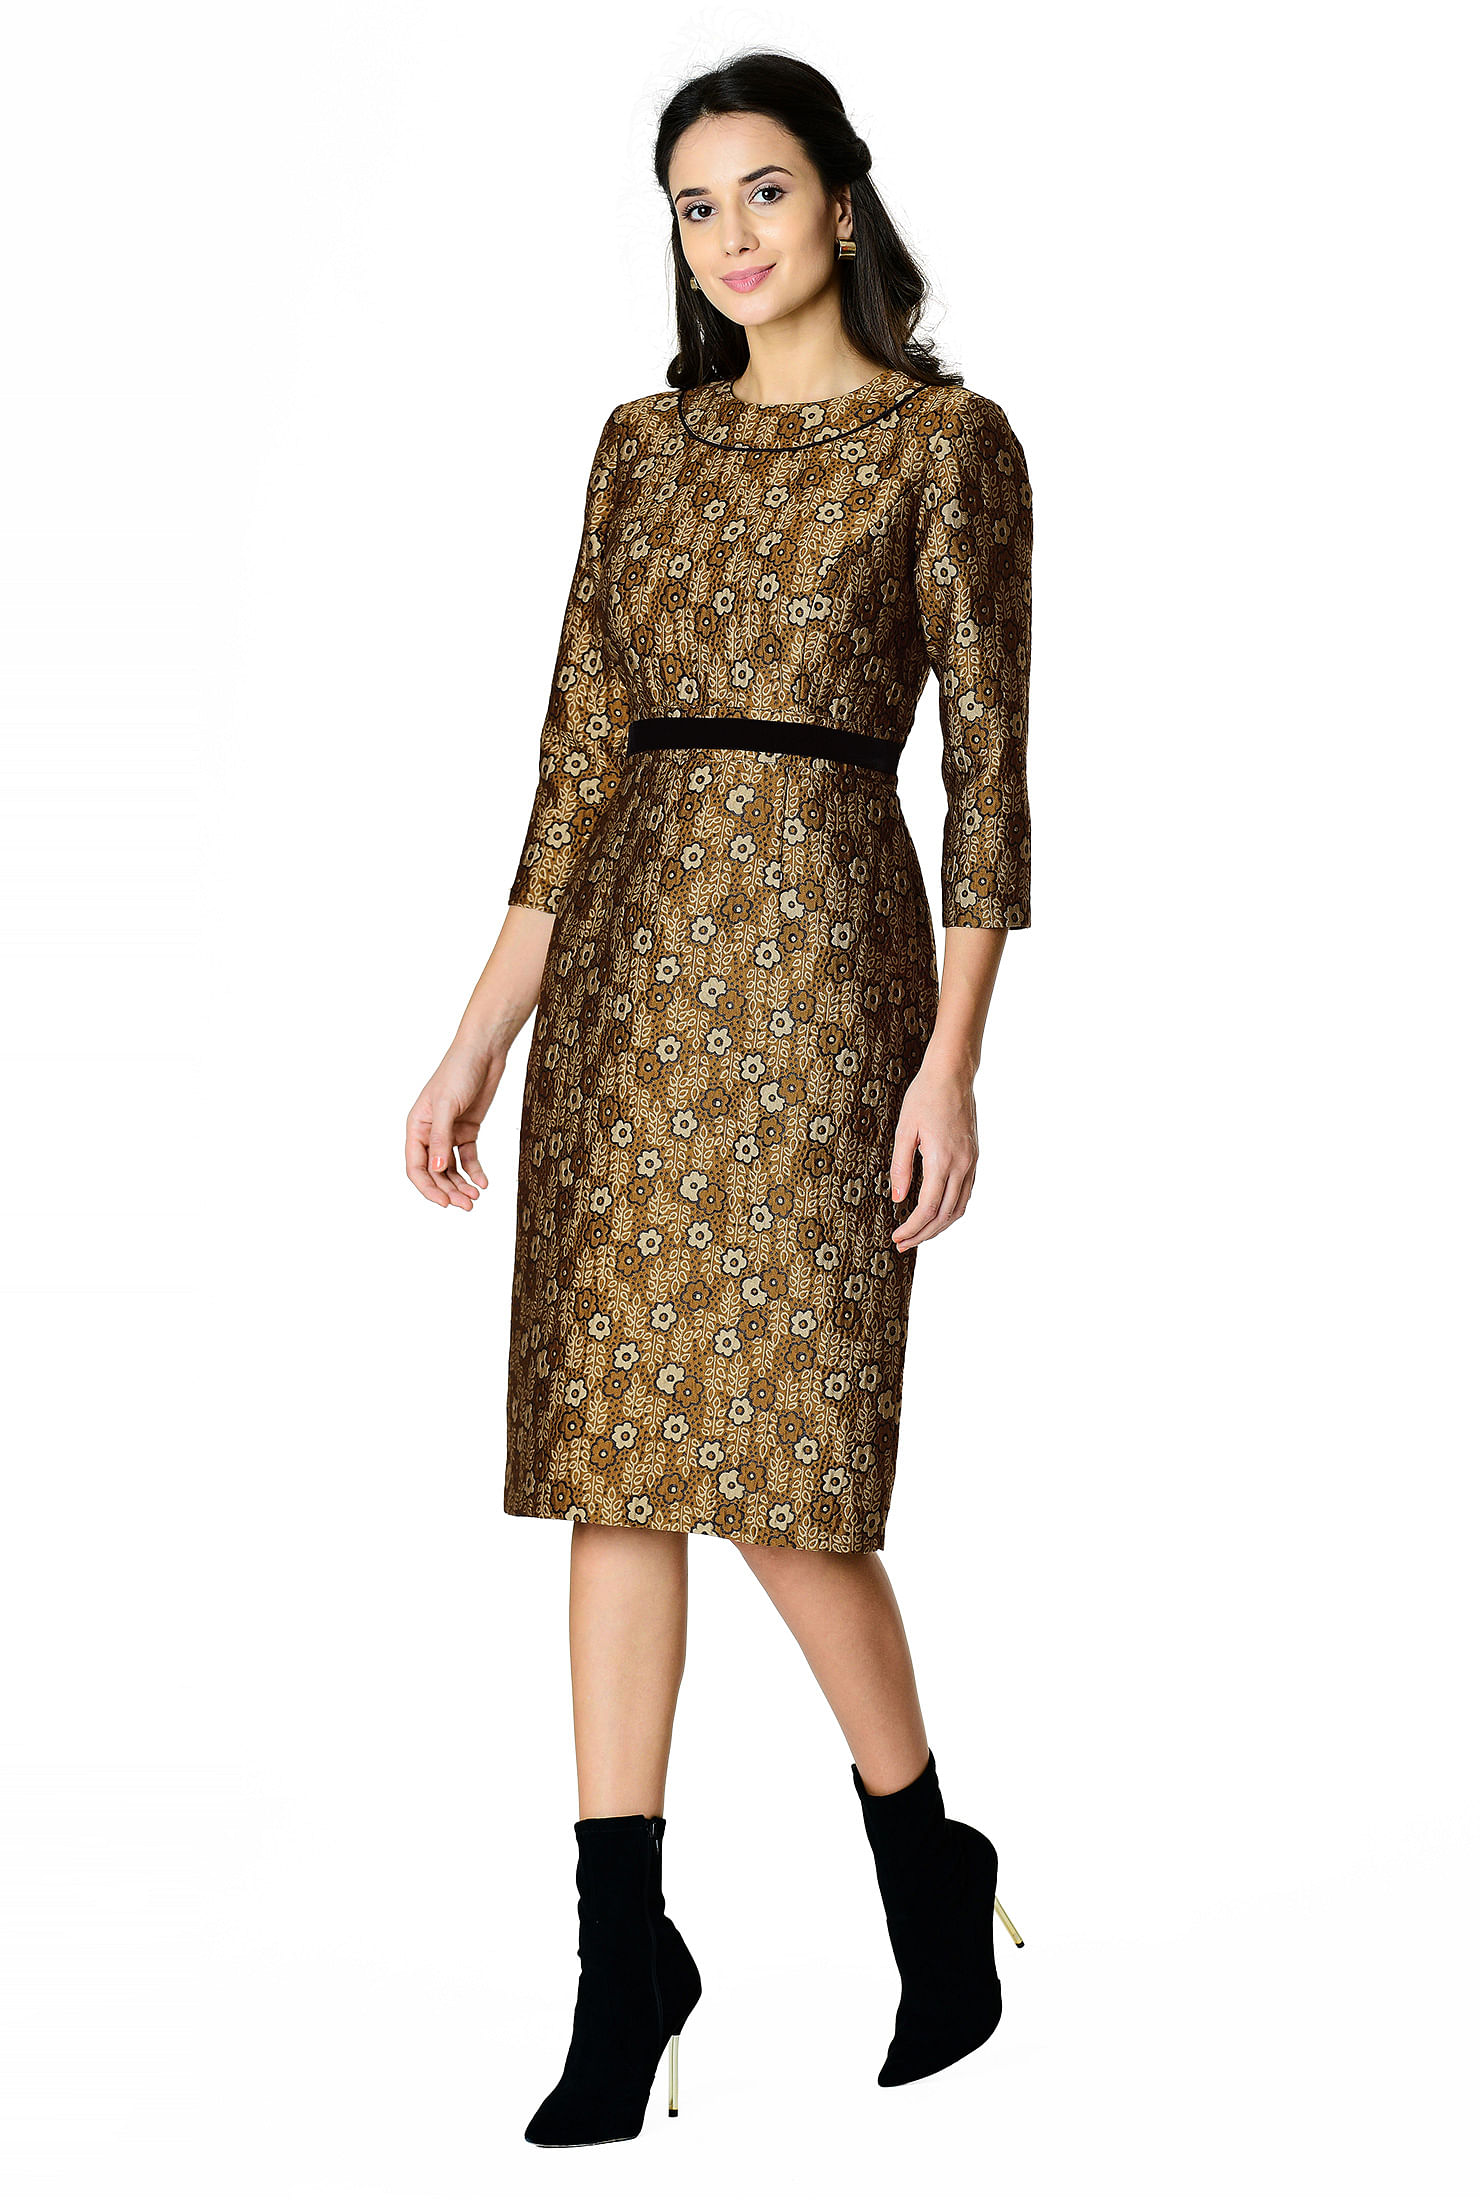 500 Vintage Style Dresses for Sale | Vintage Inspired Dresses Floral jacquard contrast waist sheath dress $89.95 AT vintagedancer.com